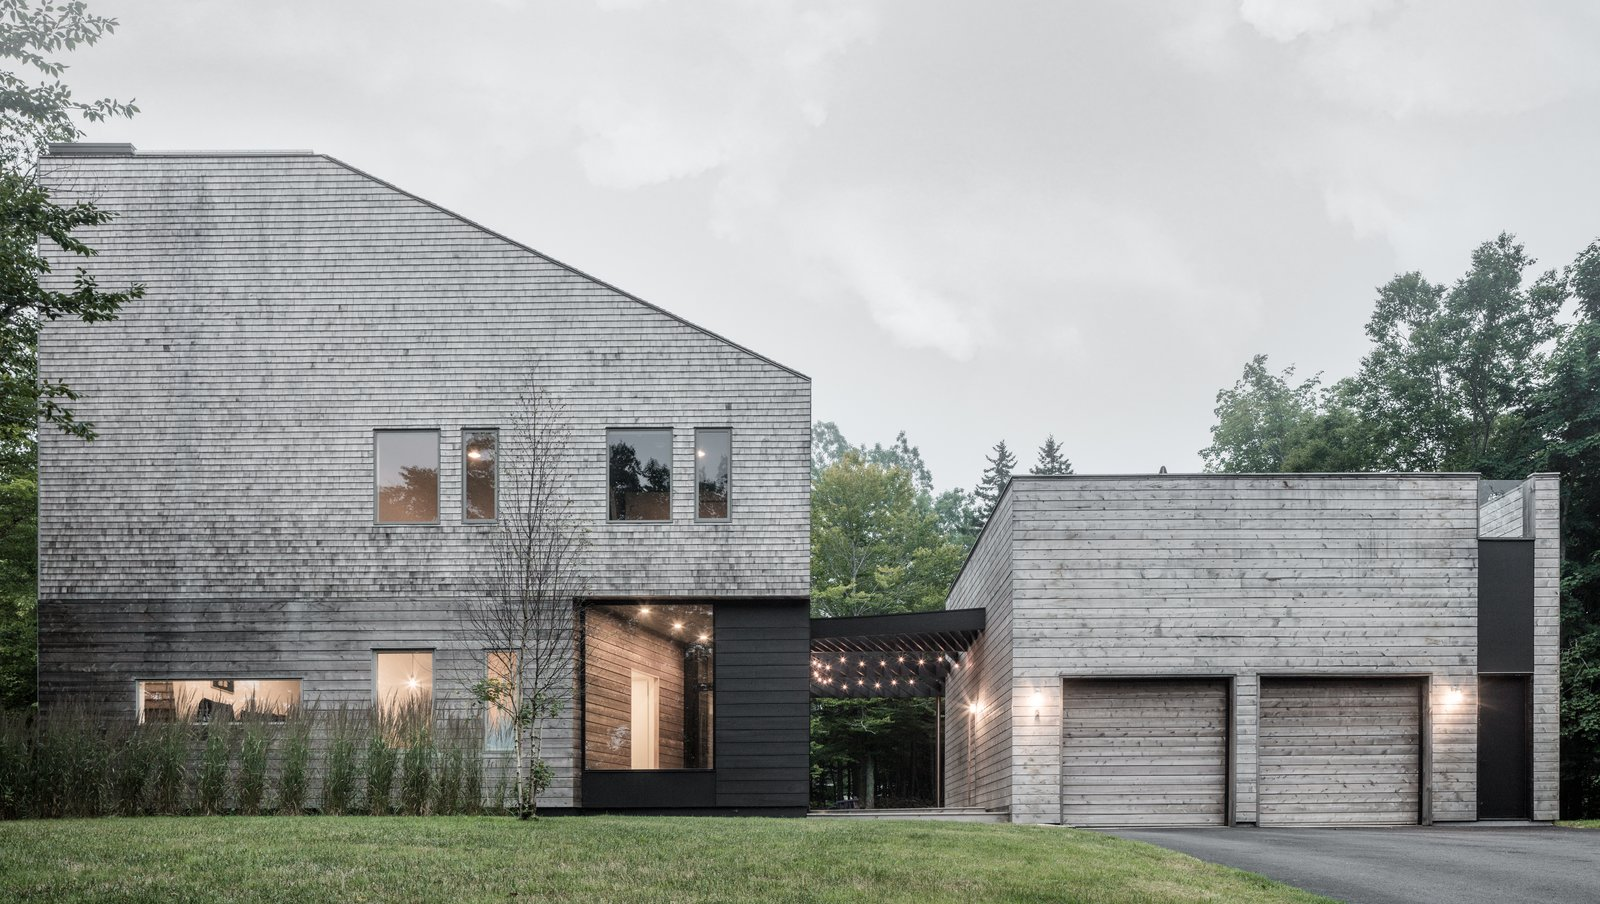 blogmarvincom.files.wordpress.com201905entirely-clad-in-cedar-shingles-the-unbridled-path-residence-is-both-familiar-and-contemporary-through-its-